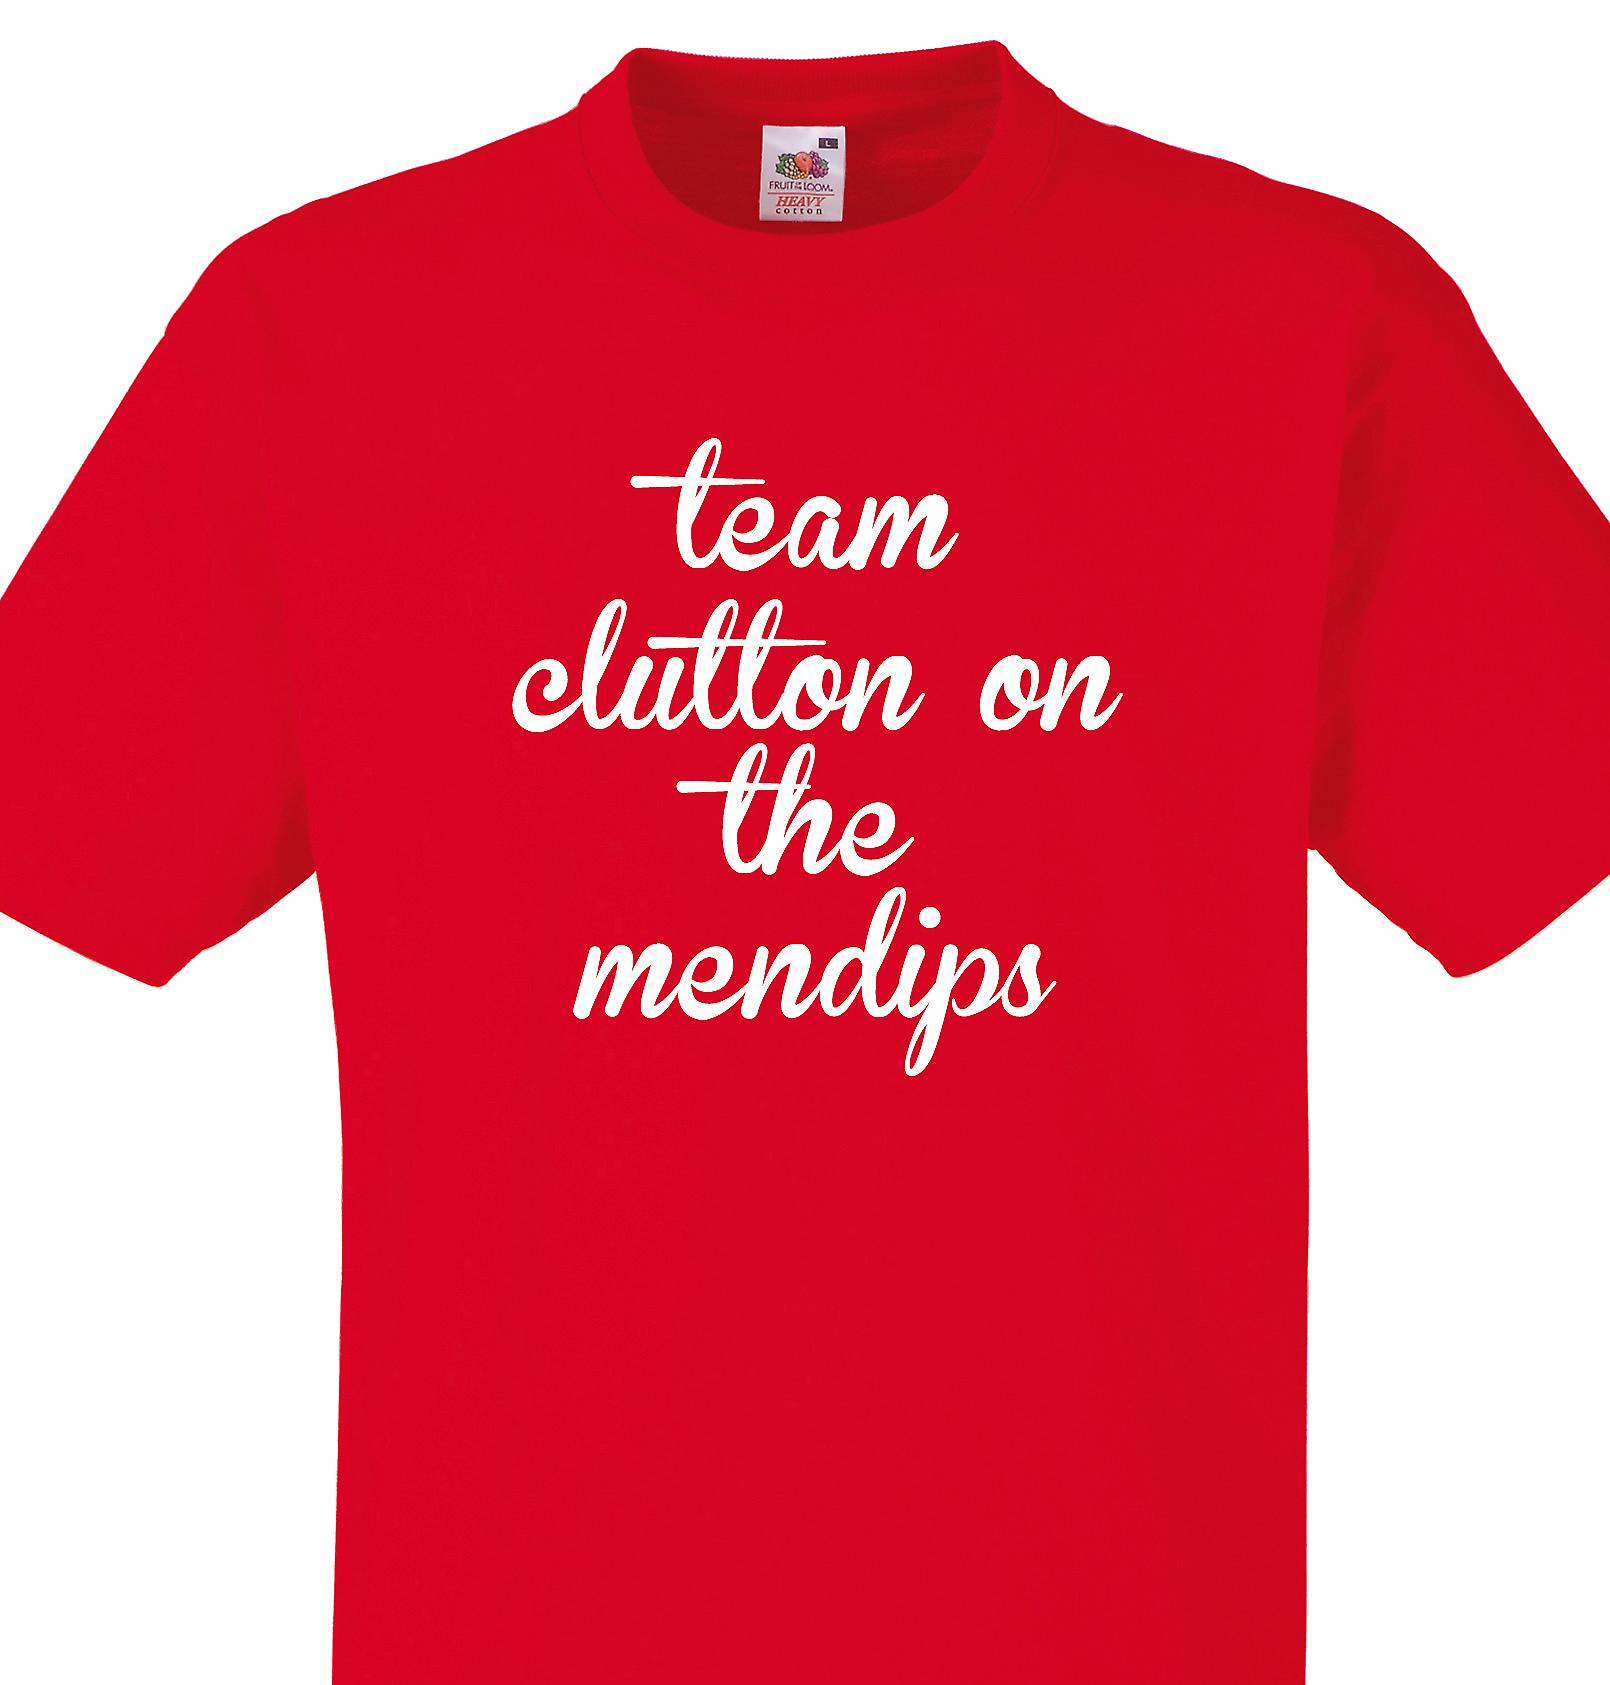 Team Clutton on the mendips Red T shirt